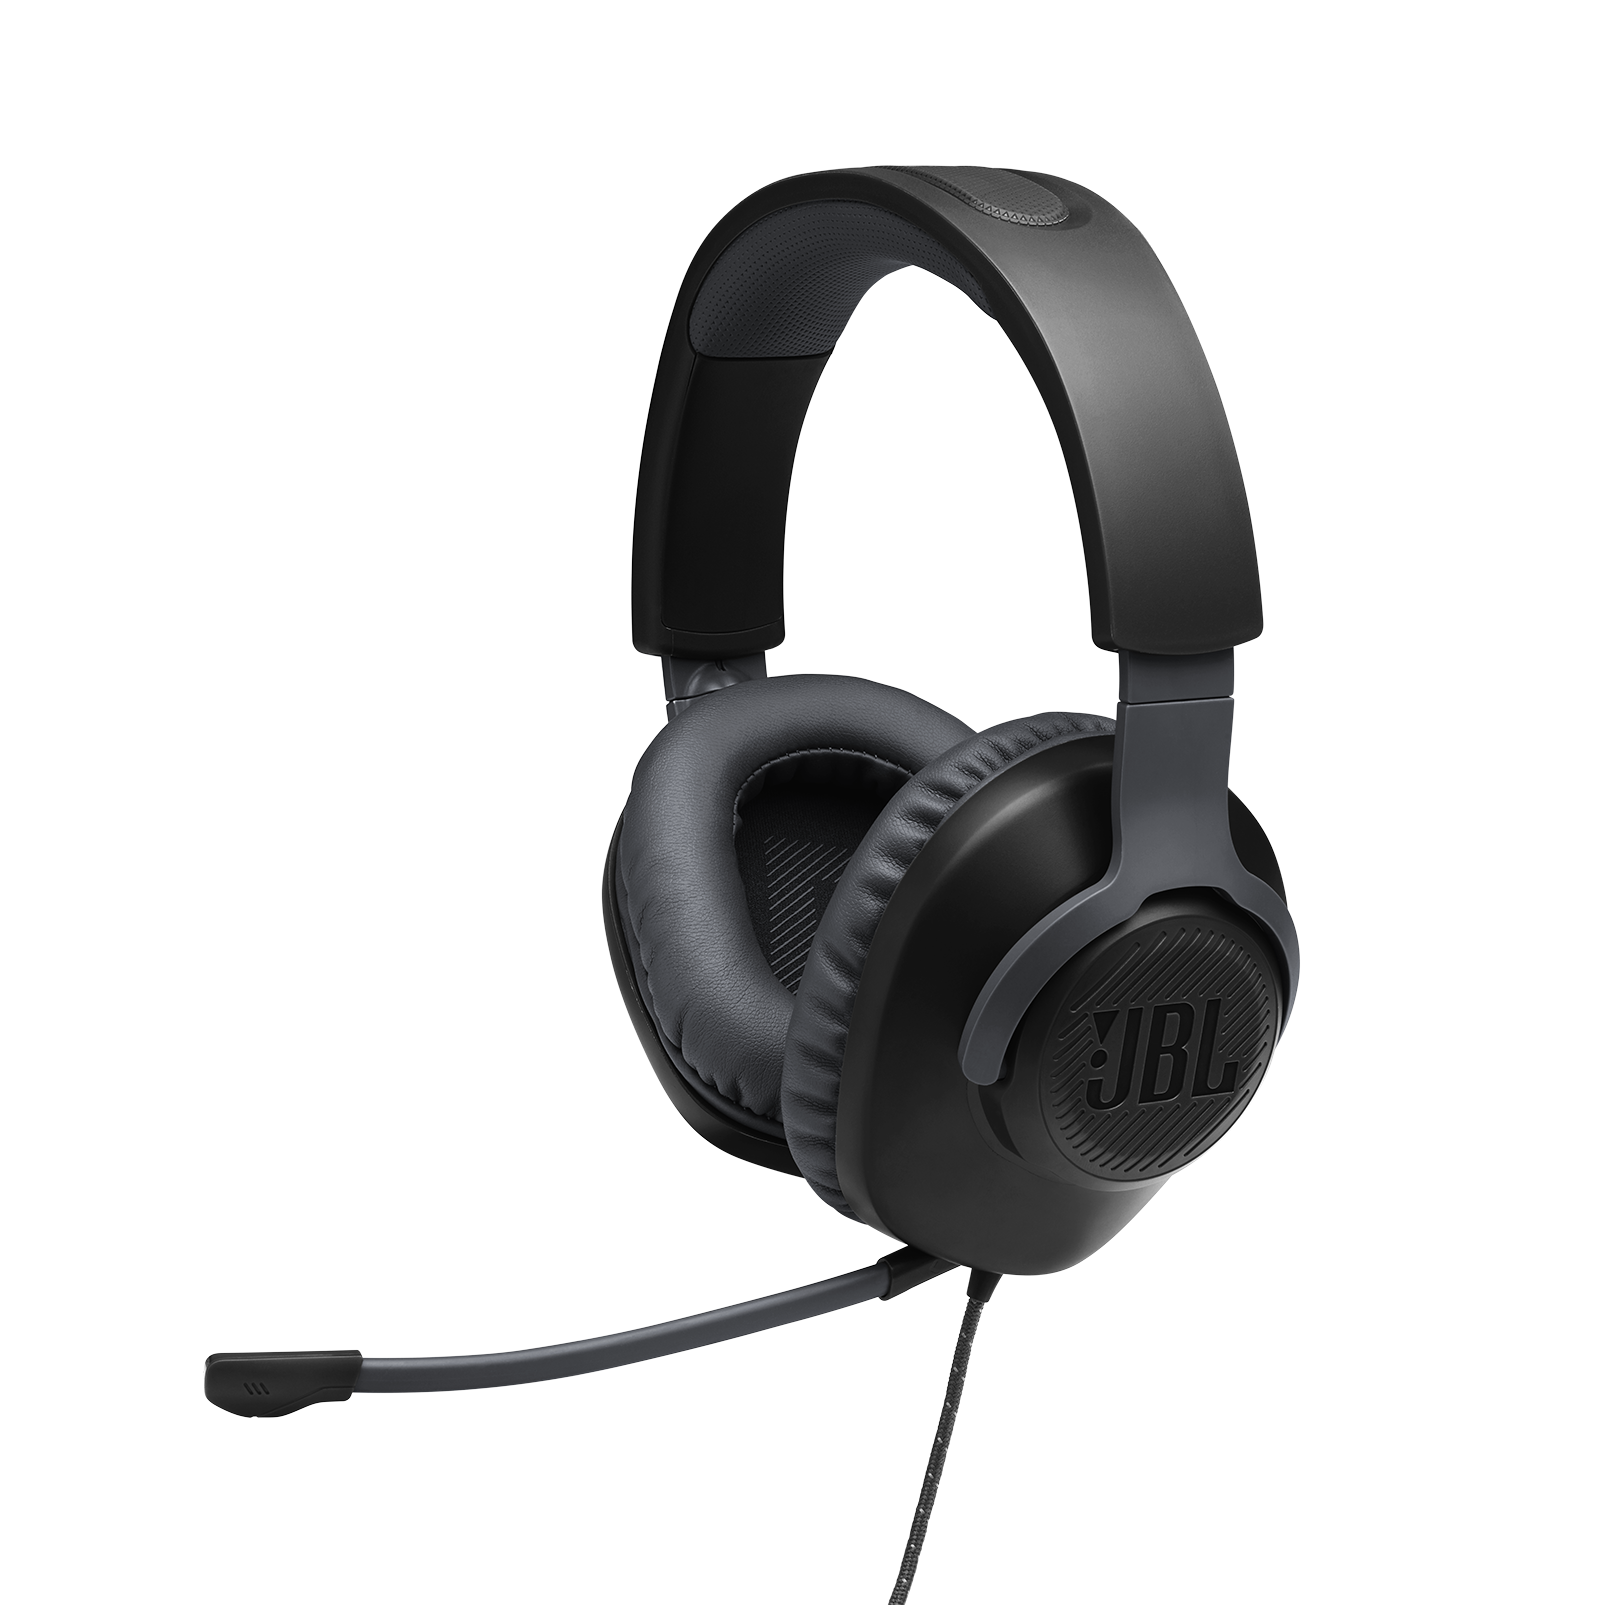 JBL Quantum 100 - Black - Wired over-ear gaming headset with a detachable mic - Detailshot 1